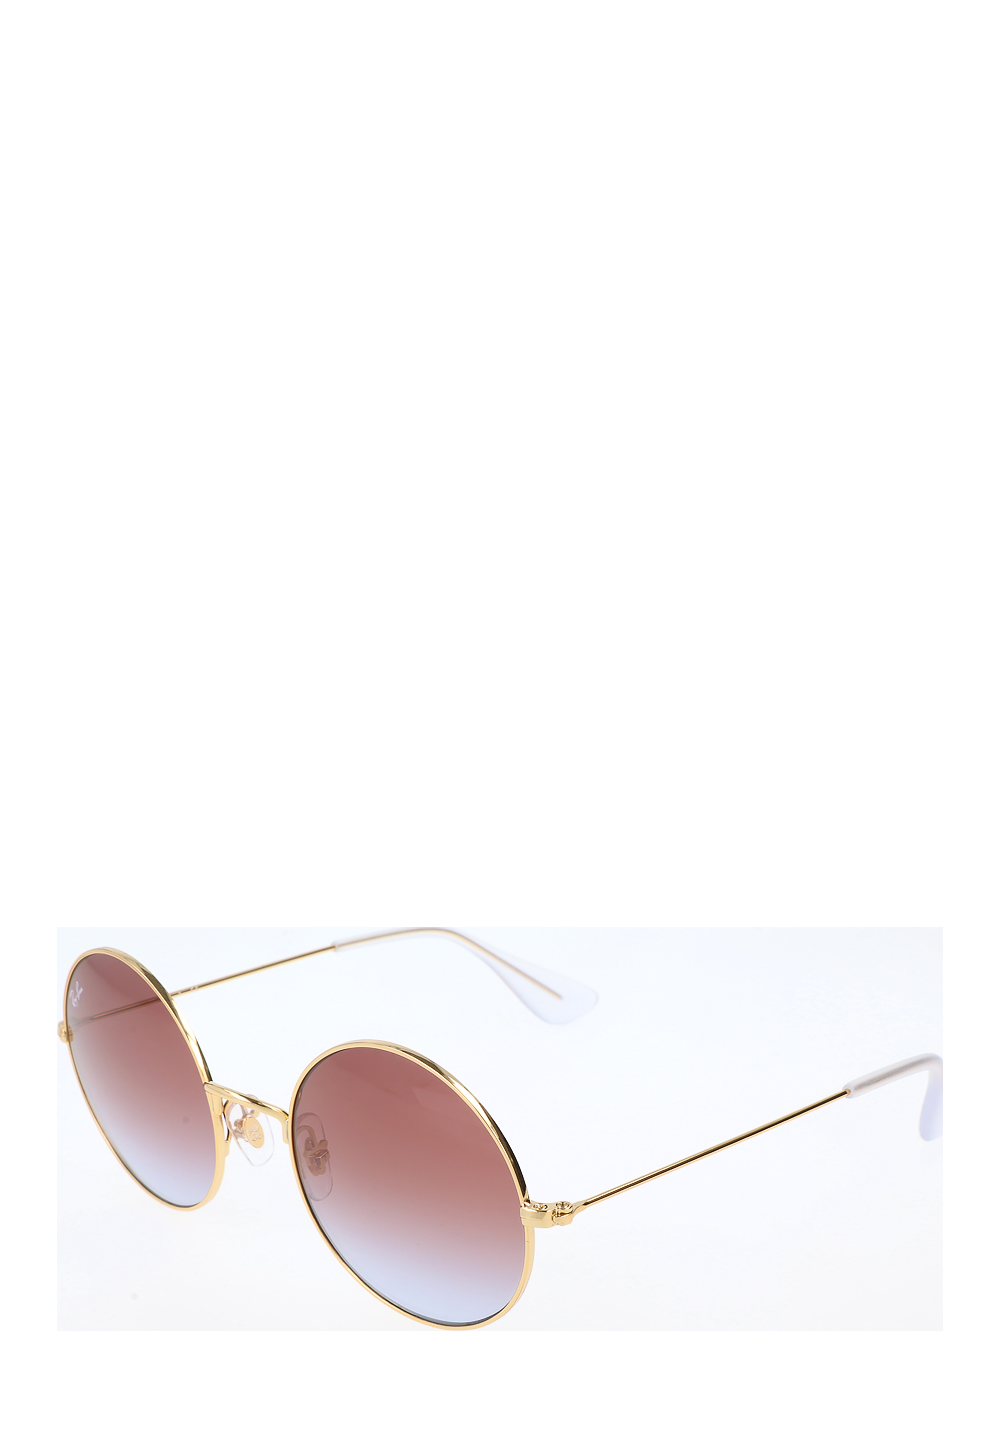 Sonnenbrille Rb3592, UV 400, golden